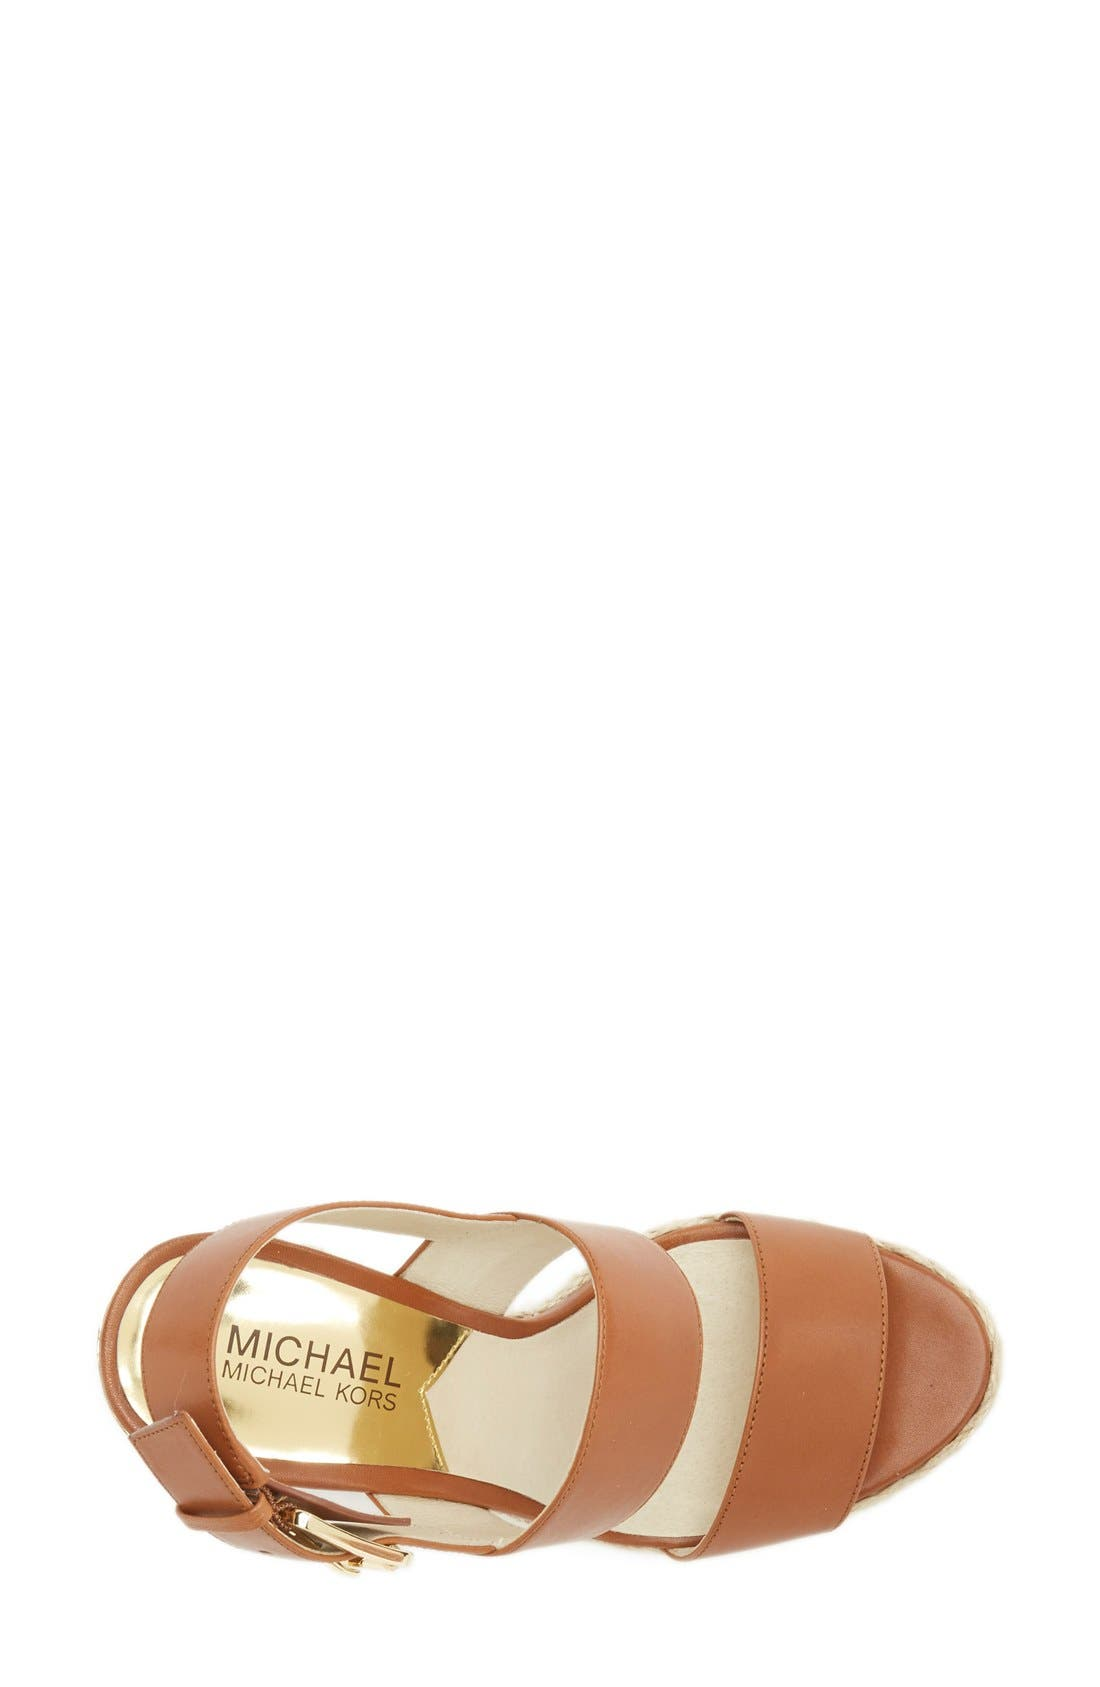 Alternate Image 3  - MICHAEL Michael Kors 'Posey' Espadrille Wedge Sandal (Women)